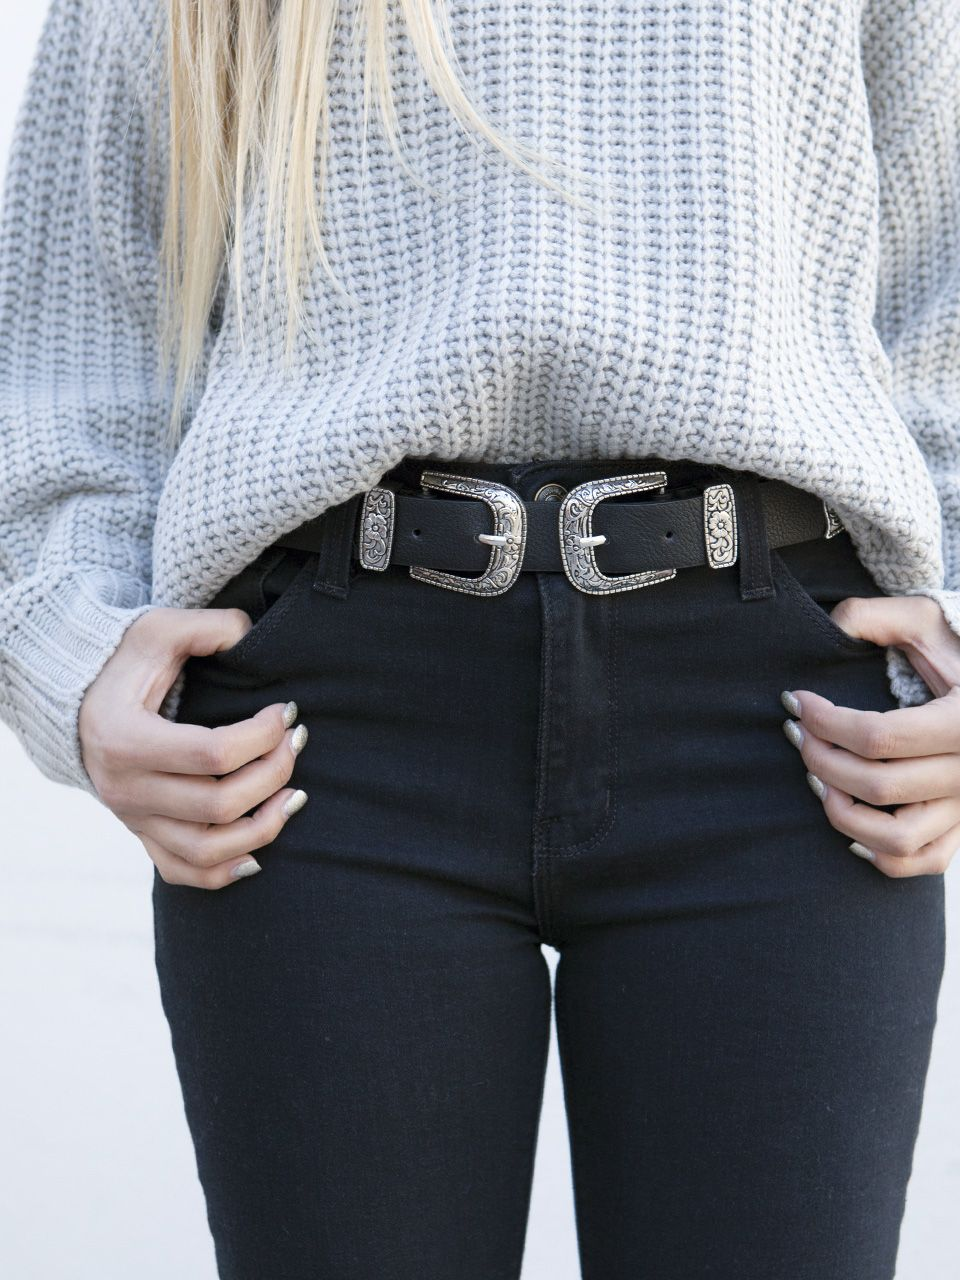 2f61ba6096503 DELUXE DOUBLE BUCKLE BELT | Style in 2019 | Fashion, Buckle outfits ...